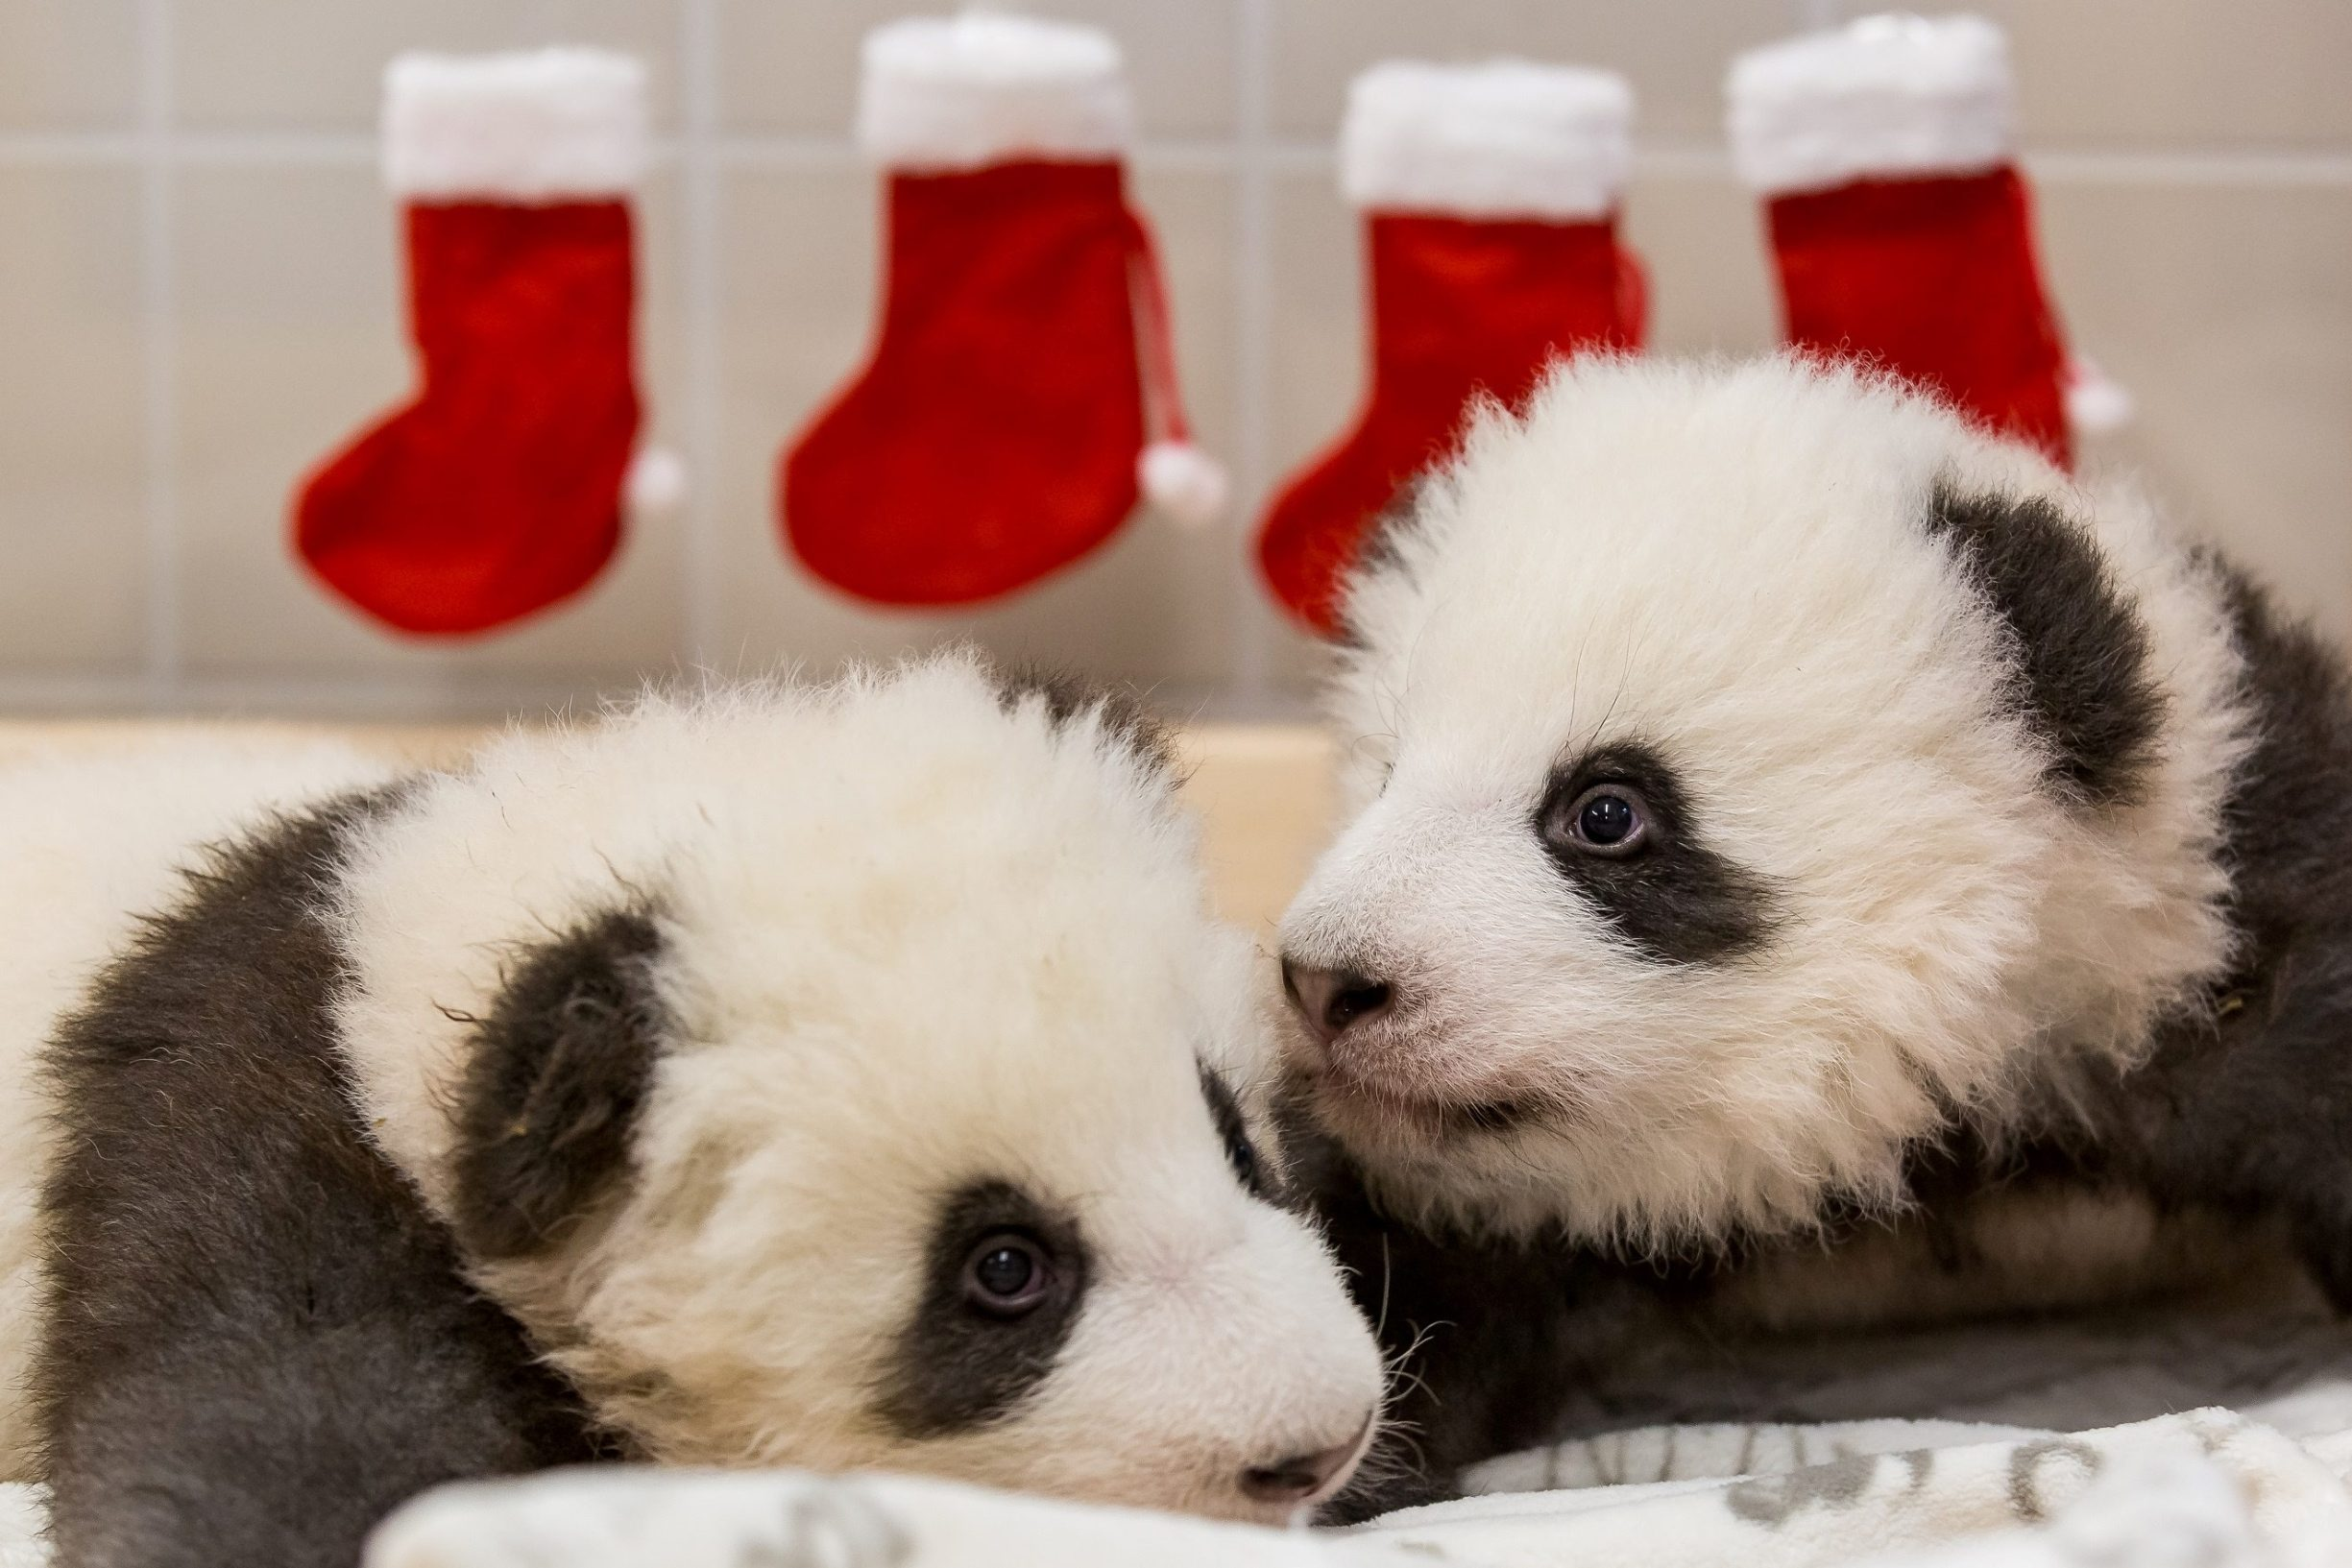 A handout photo shows twin panda cubs resting in Berlin Zoo, Germany, December 4, 2019. Picture taken December 4, 2019. Berlin Zoo/Handout via REUTERS ATTENTION EDITORS - THIS IMAGE WAS PROVIDED BY A THIRD PARTY. NO RESALES. NO ARCHIVES. MANDATORY CREDIT.